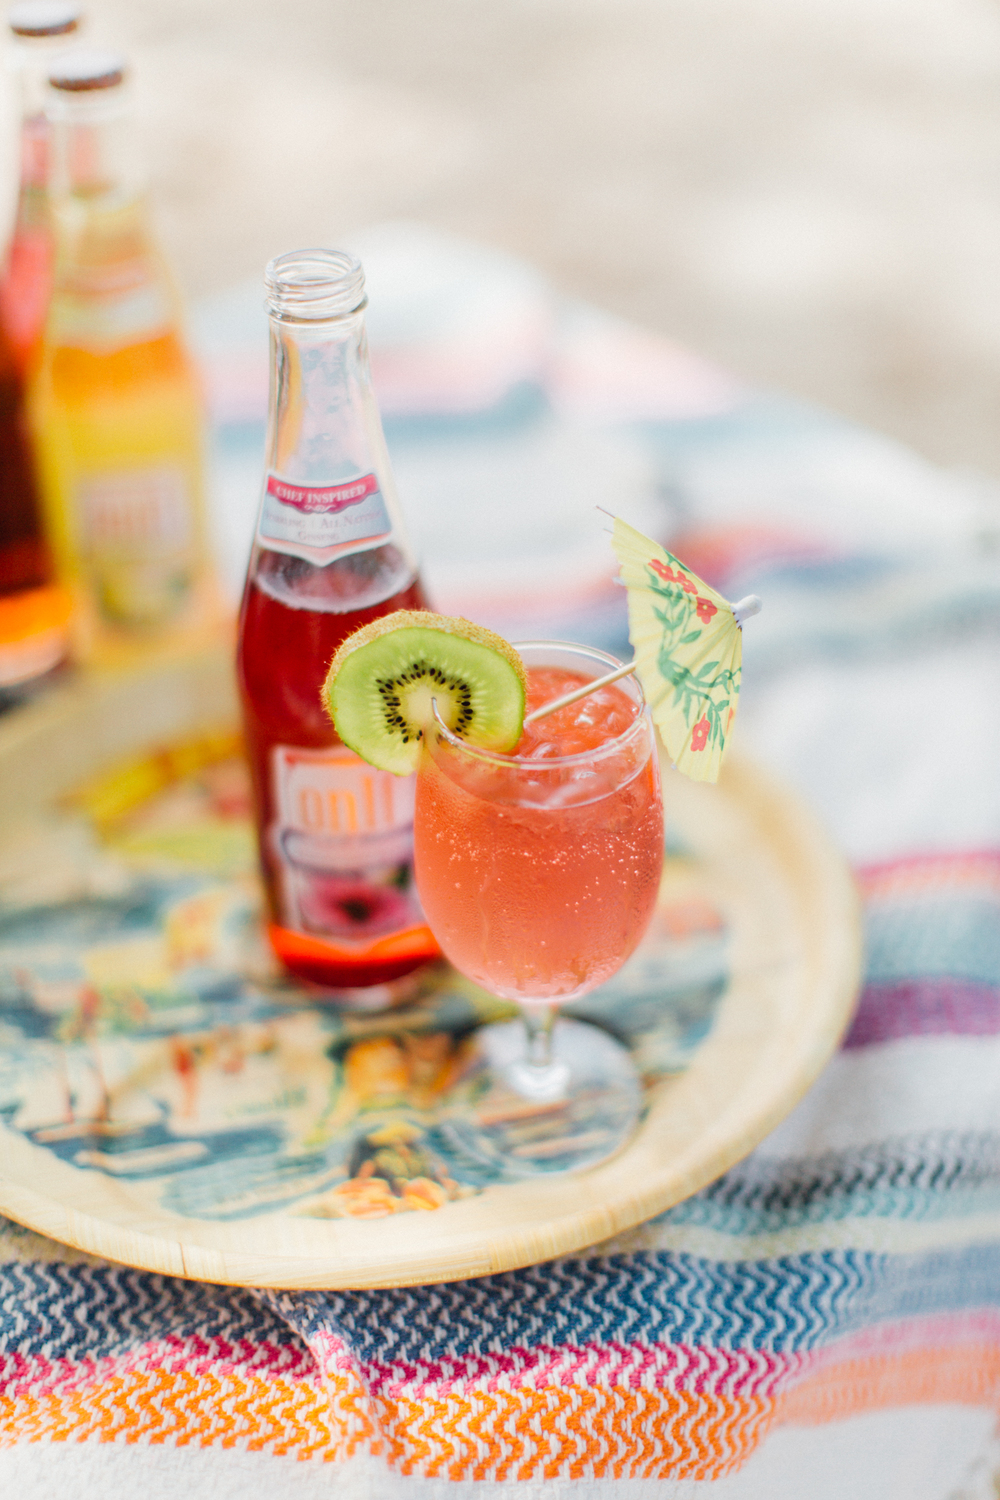 Free_Reverie_Styled_Photoshoot-Summer_Drink_Recipes-Florida_Party_Inspiration251.jpg